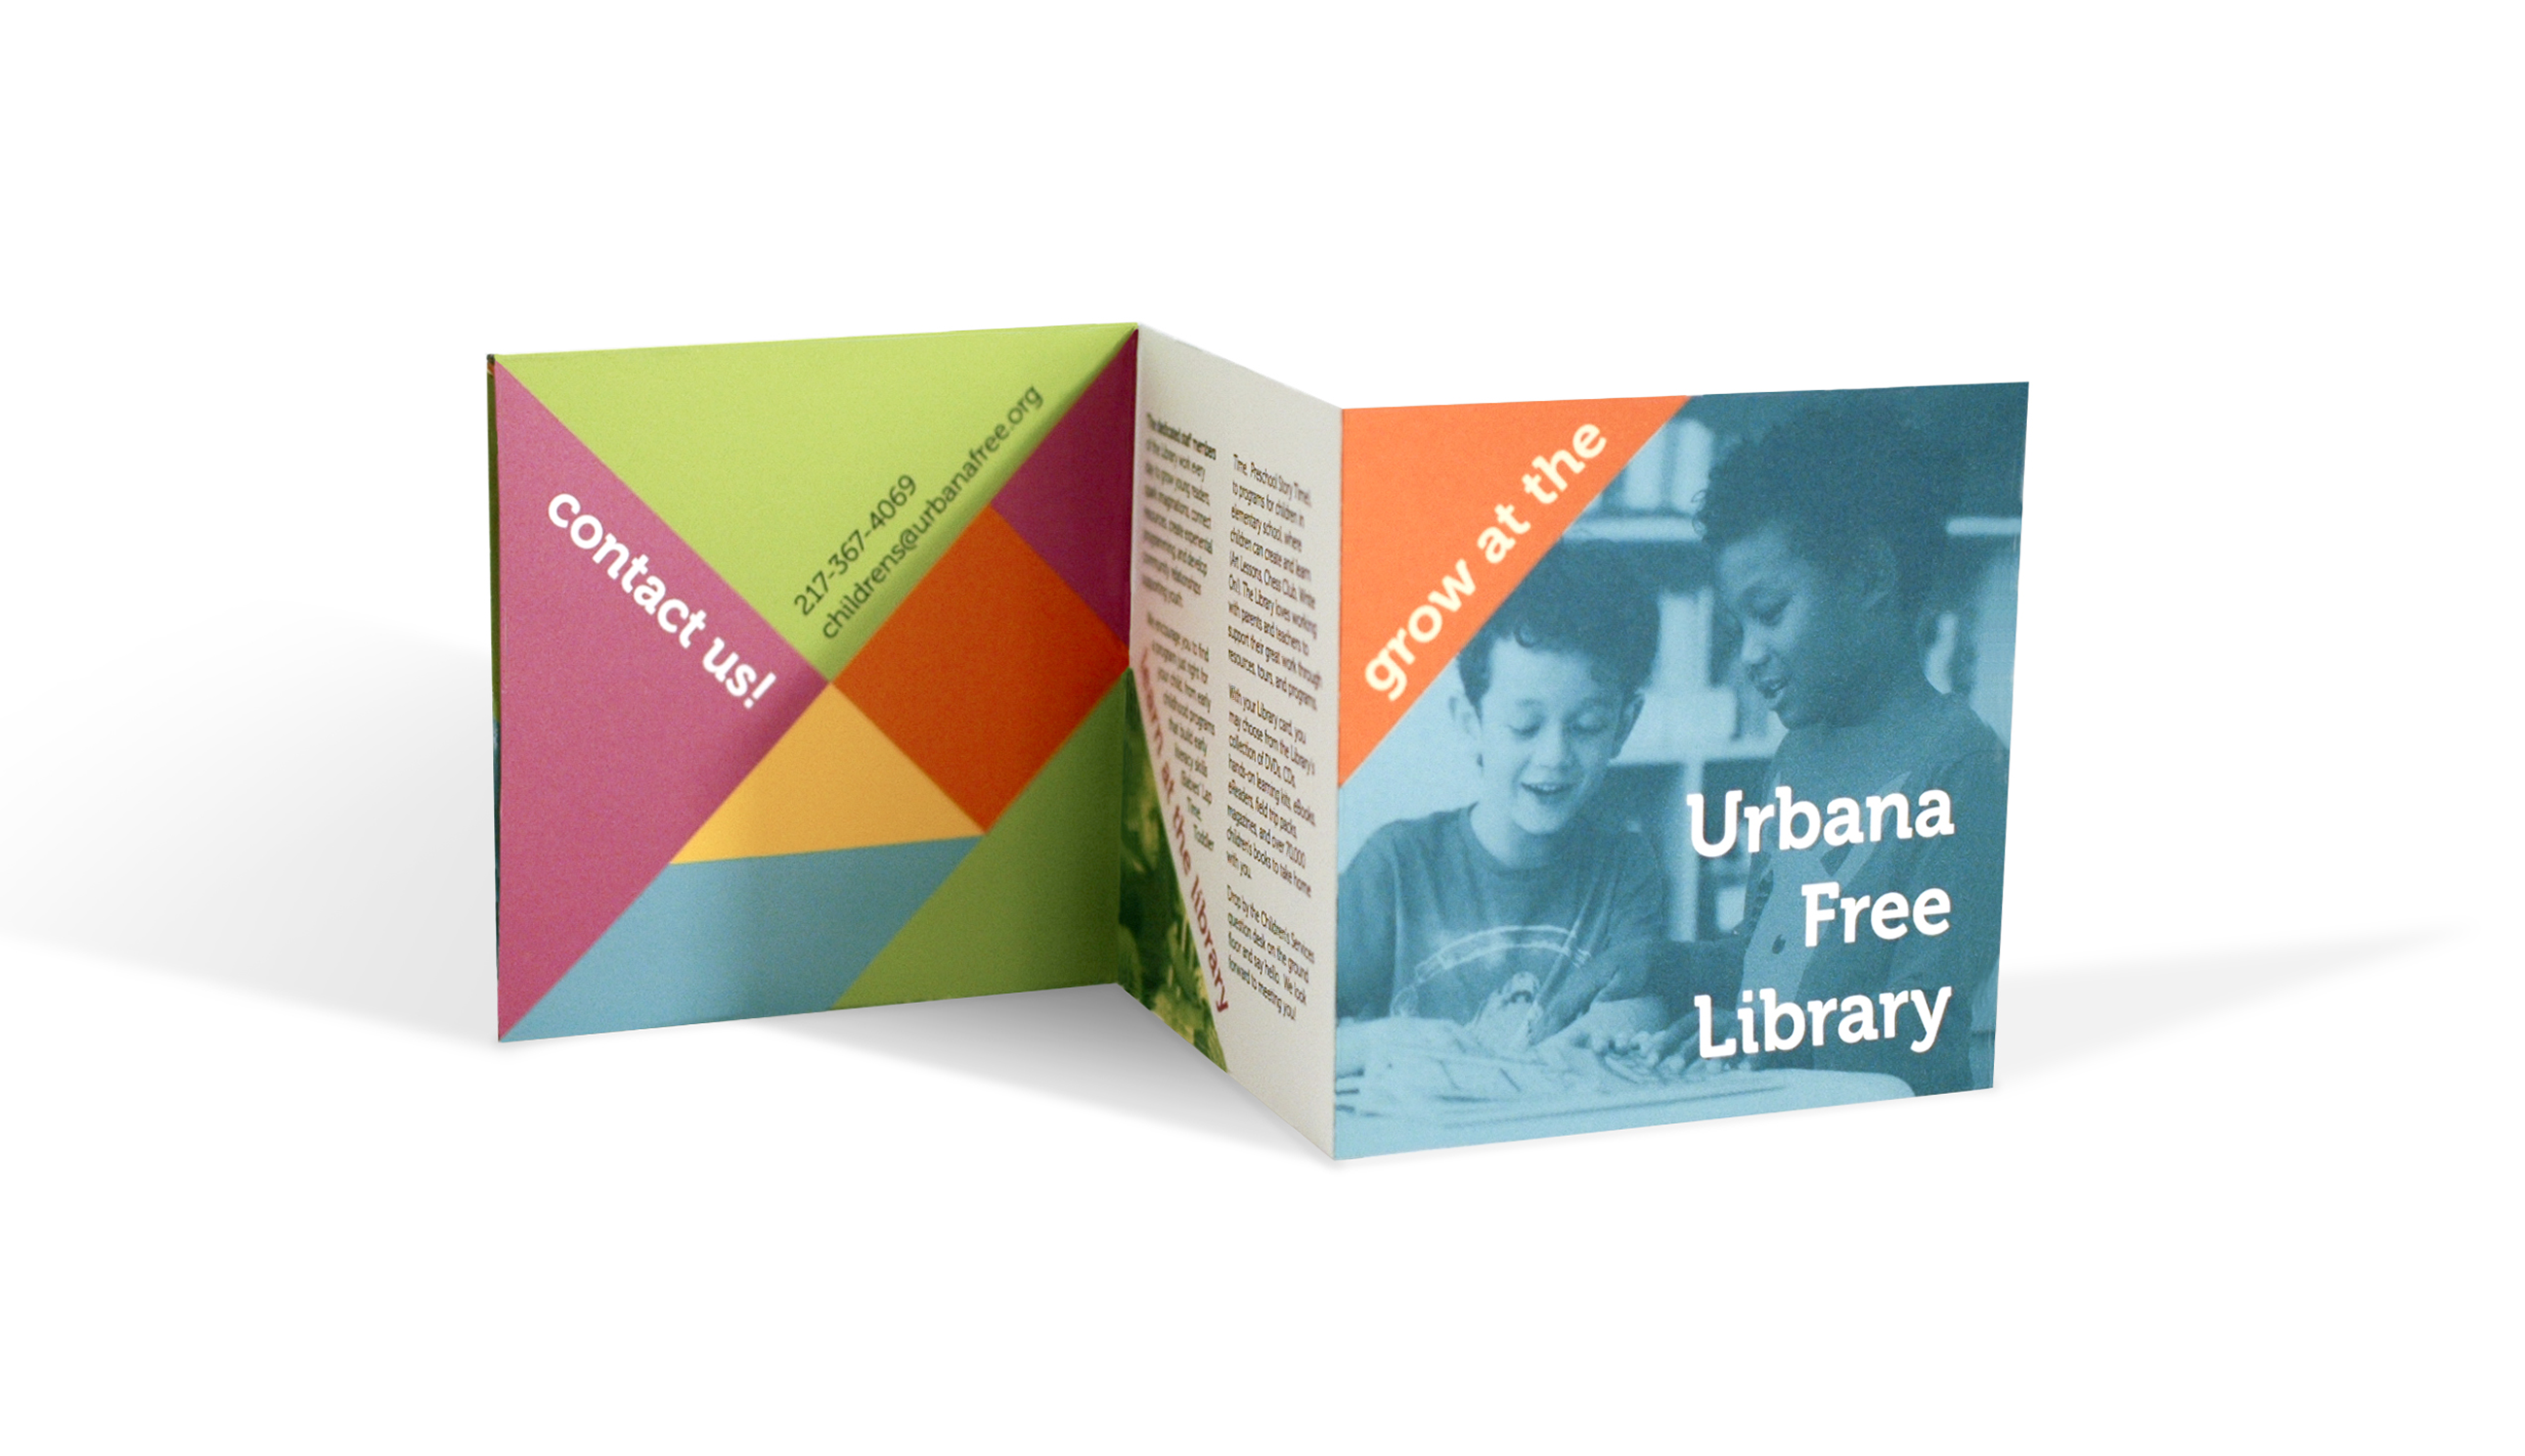 Brochure for the Urbana Free Library